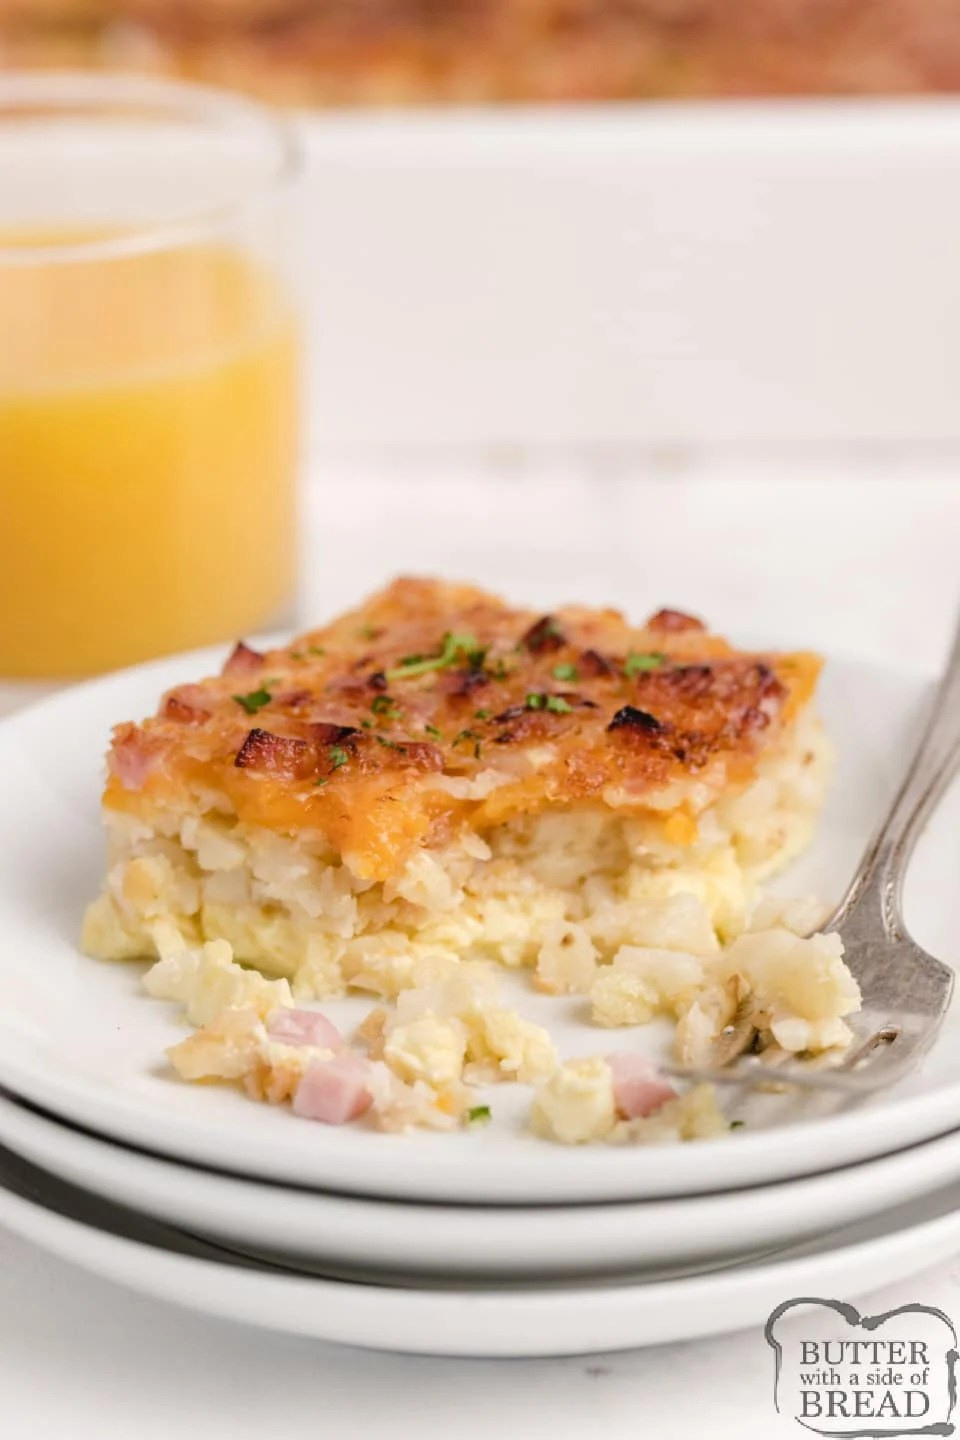 Hash Brown Breakfast Casserole made with a hash brown patty crust, ham, swiss cheese, cheddar cheese and eggs and milk. Only a few minutes of preparation for this easy breakfast casserole recipe!